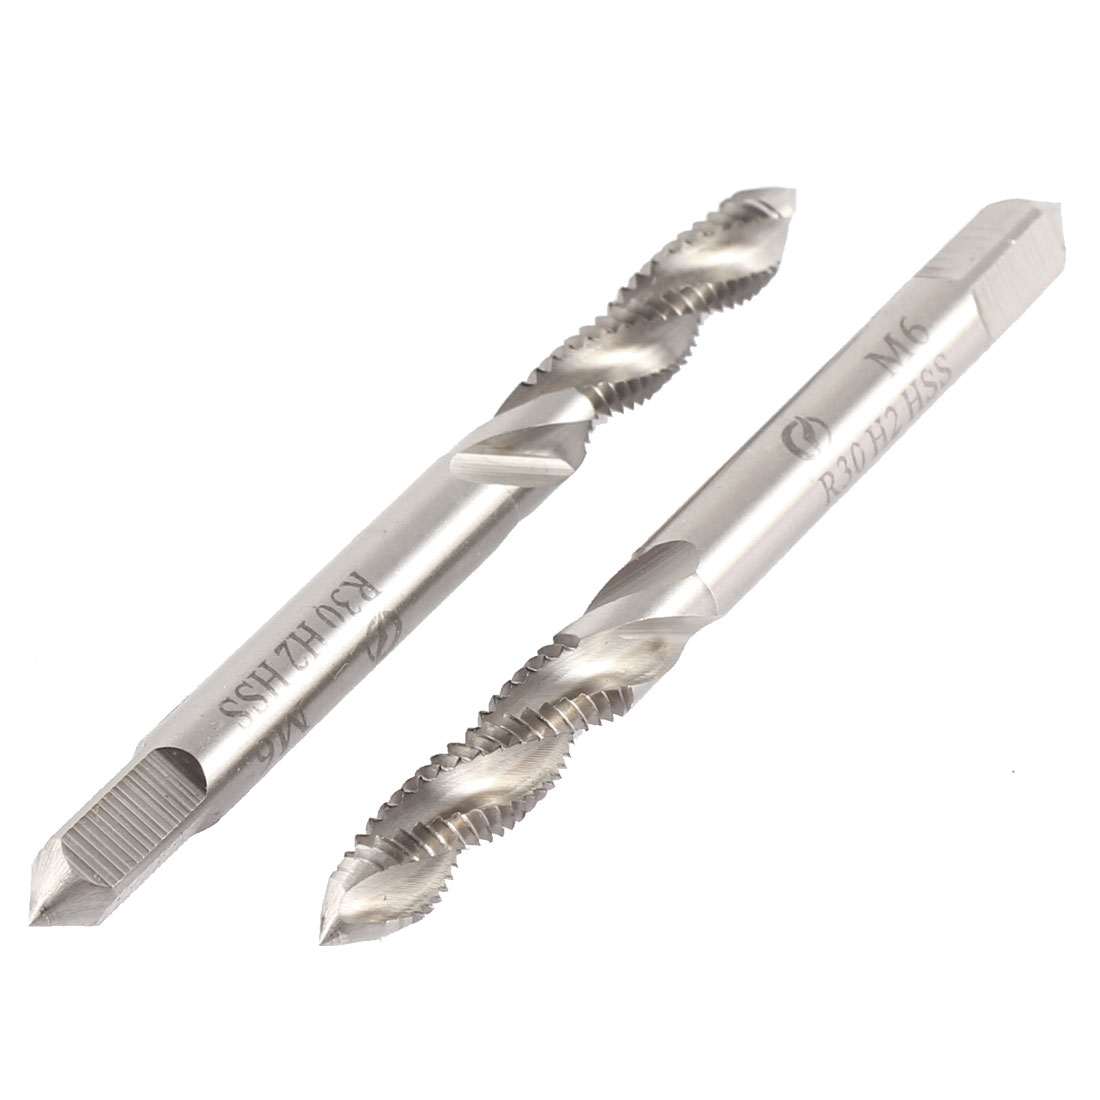 Machinists M6 x 1mm Spiral Screw Flute Machine Thread Metric Taps 2pcs